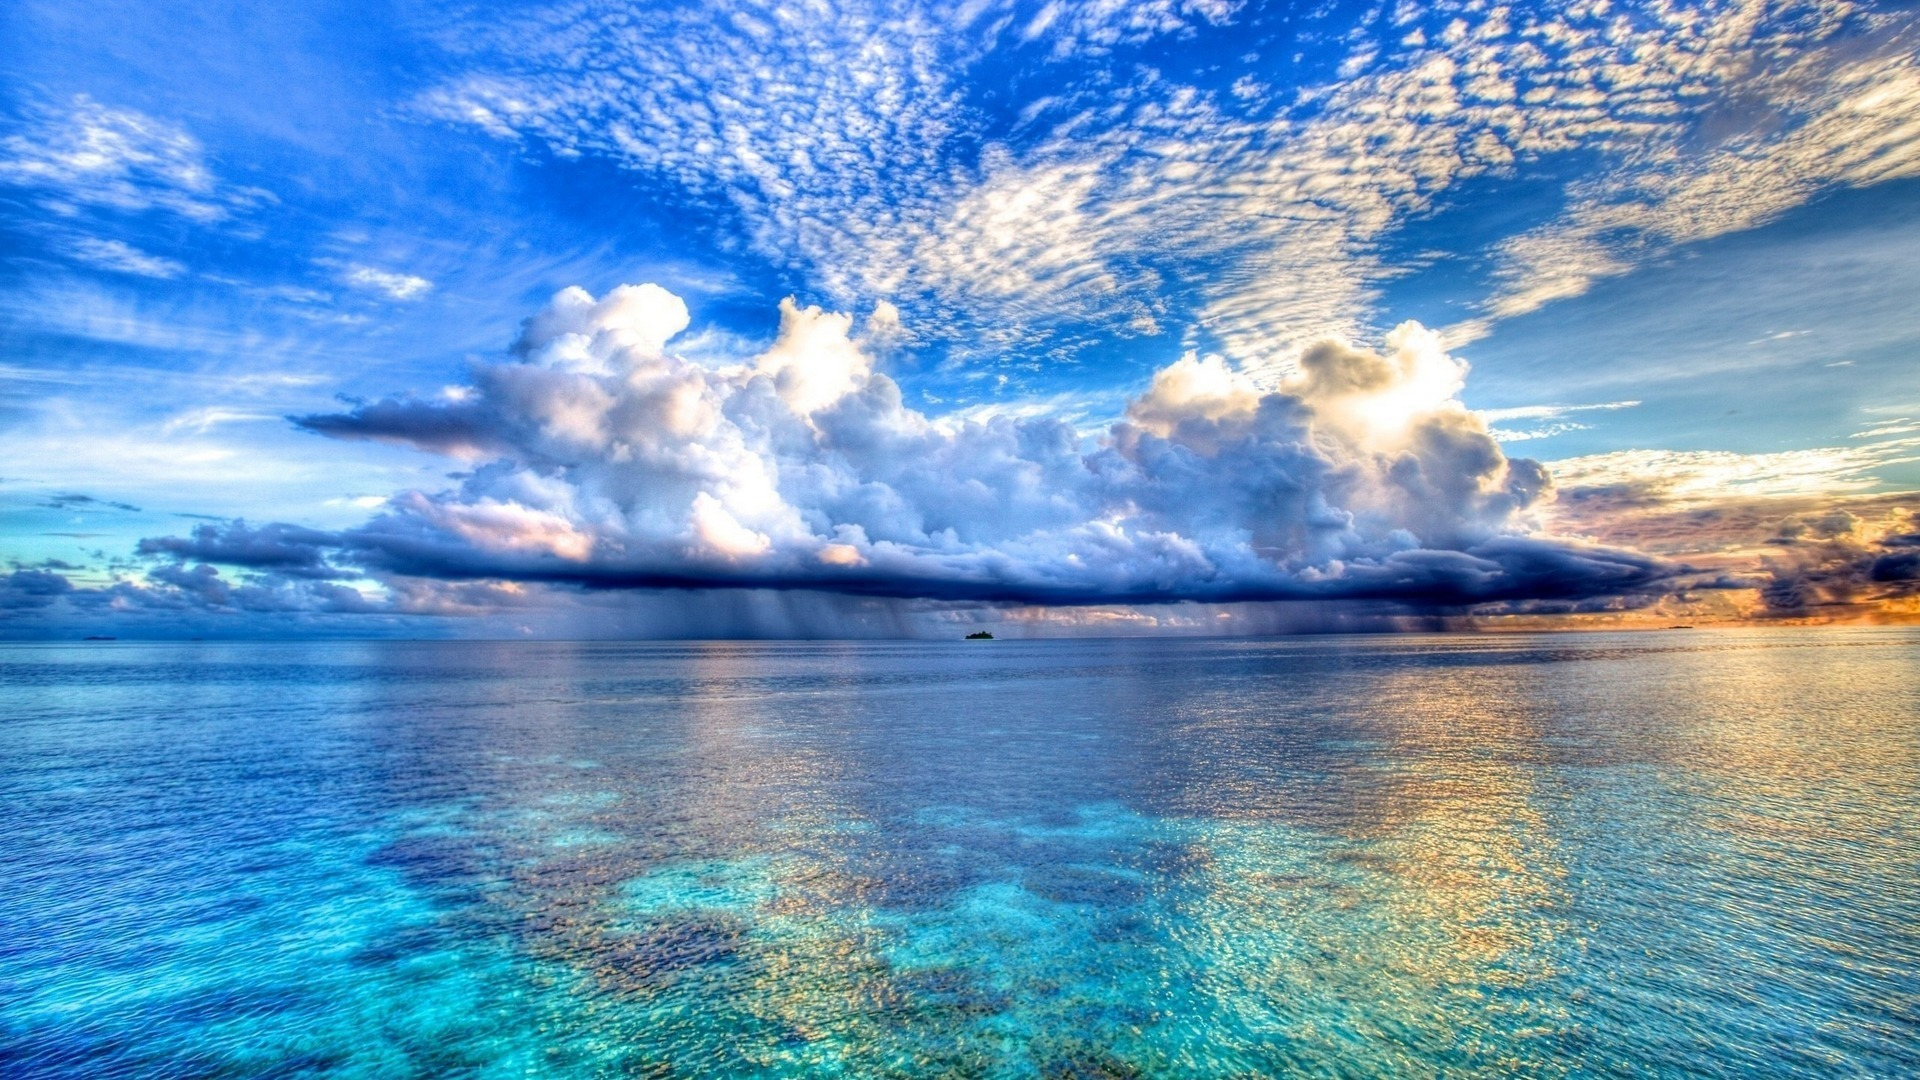 Blue Ocean Wallpaper HD Wallpaper WallpaperLepi 1920x1080